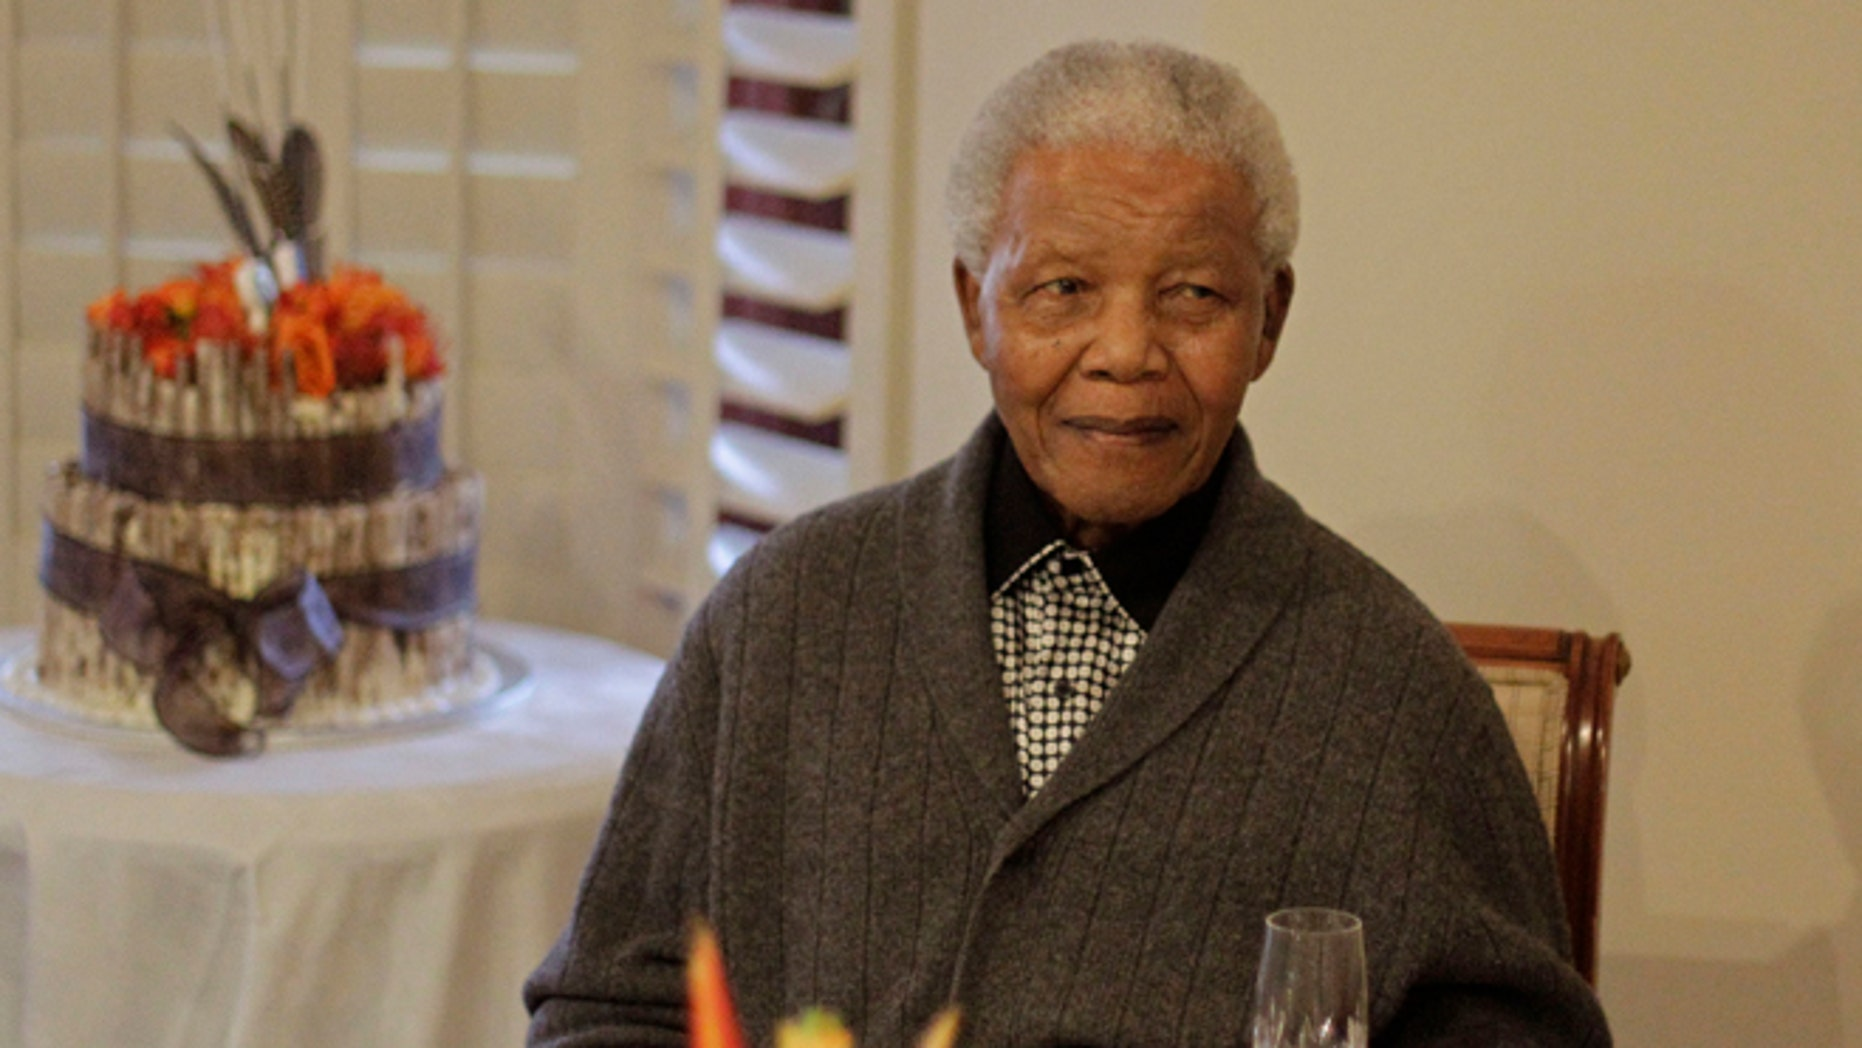 FILE: July 18, 2012: Former South African President Nelson Mandela as he celebrated his birthday with family in Qunu, South Africa.